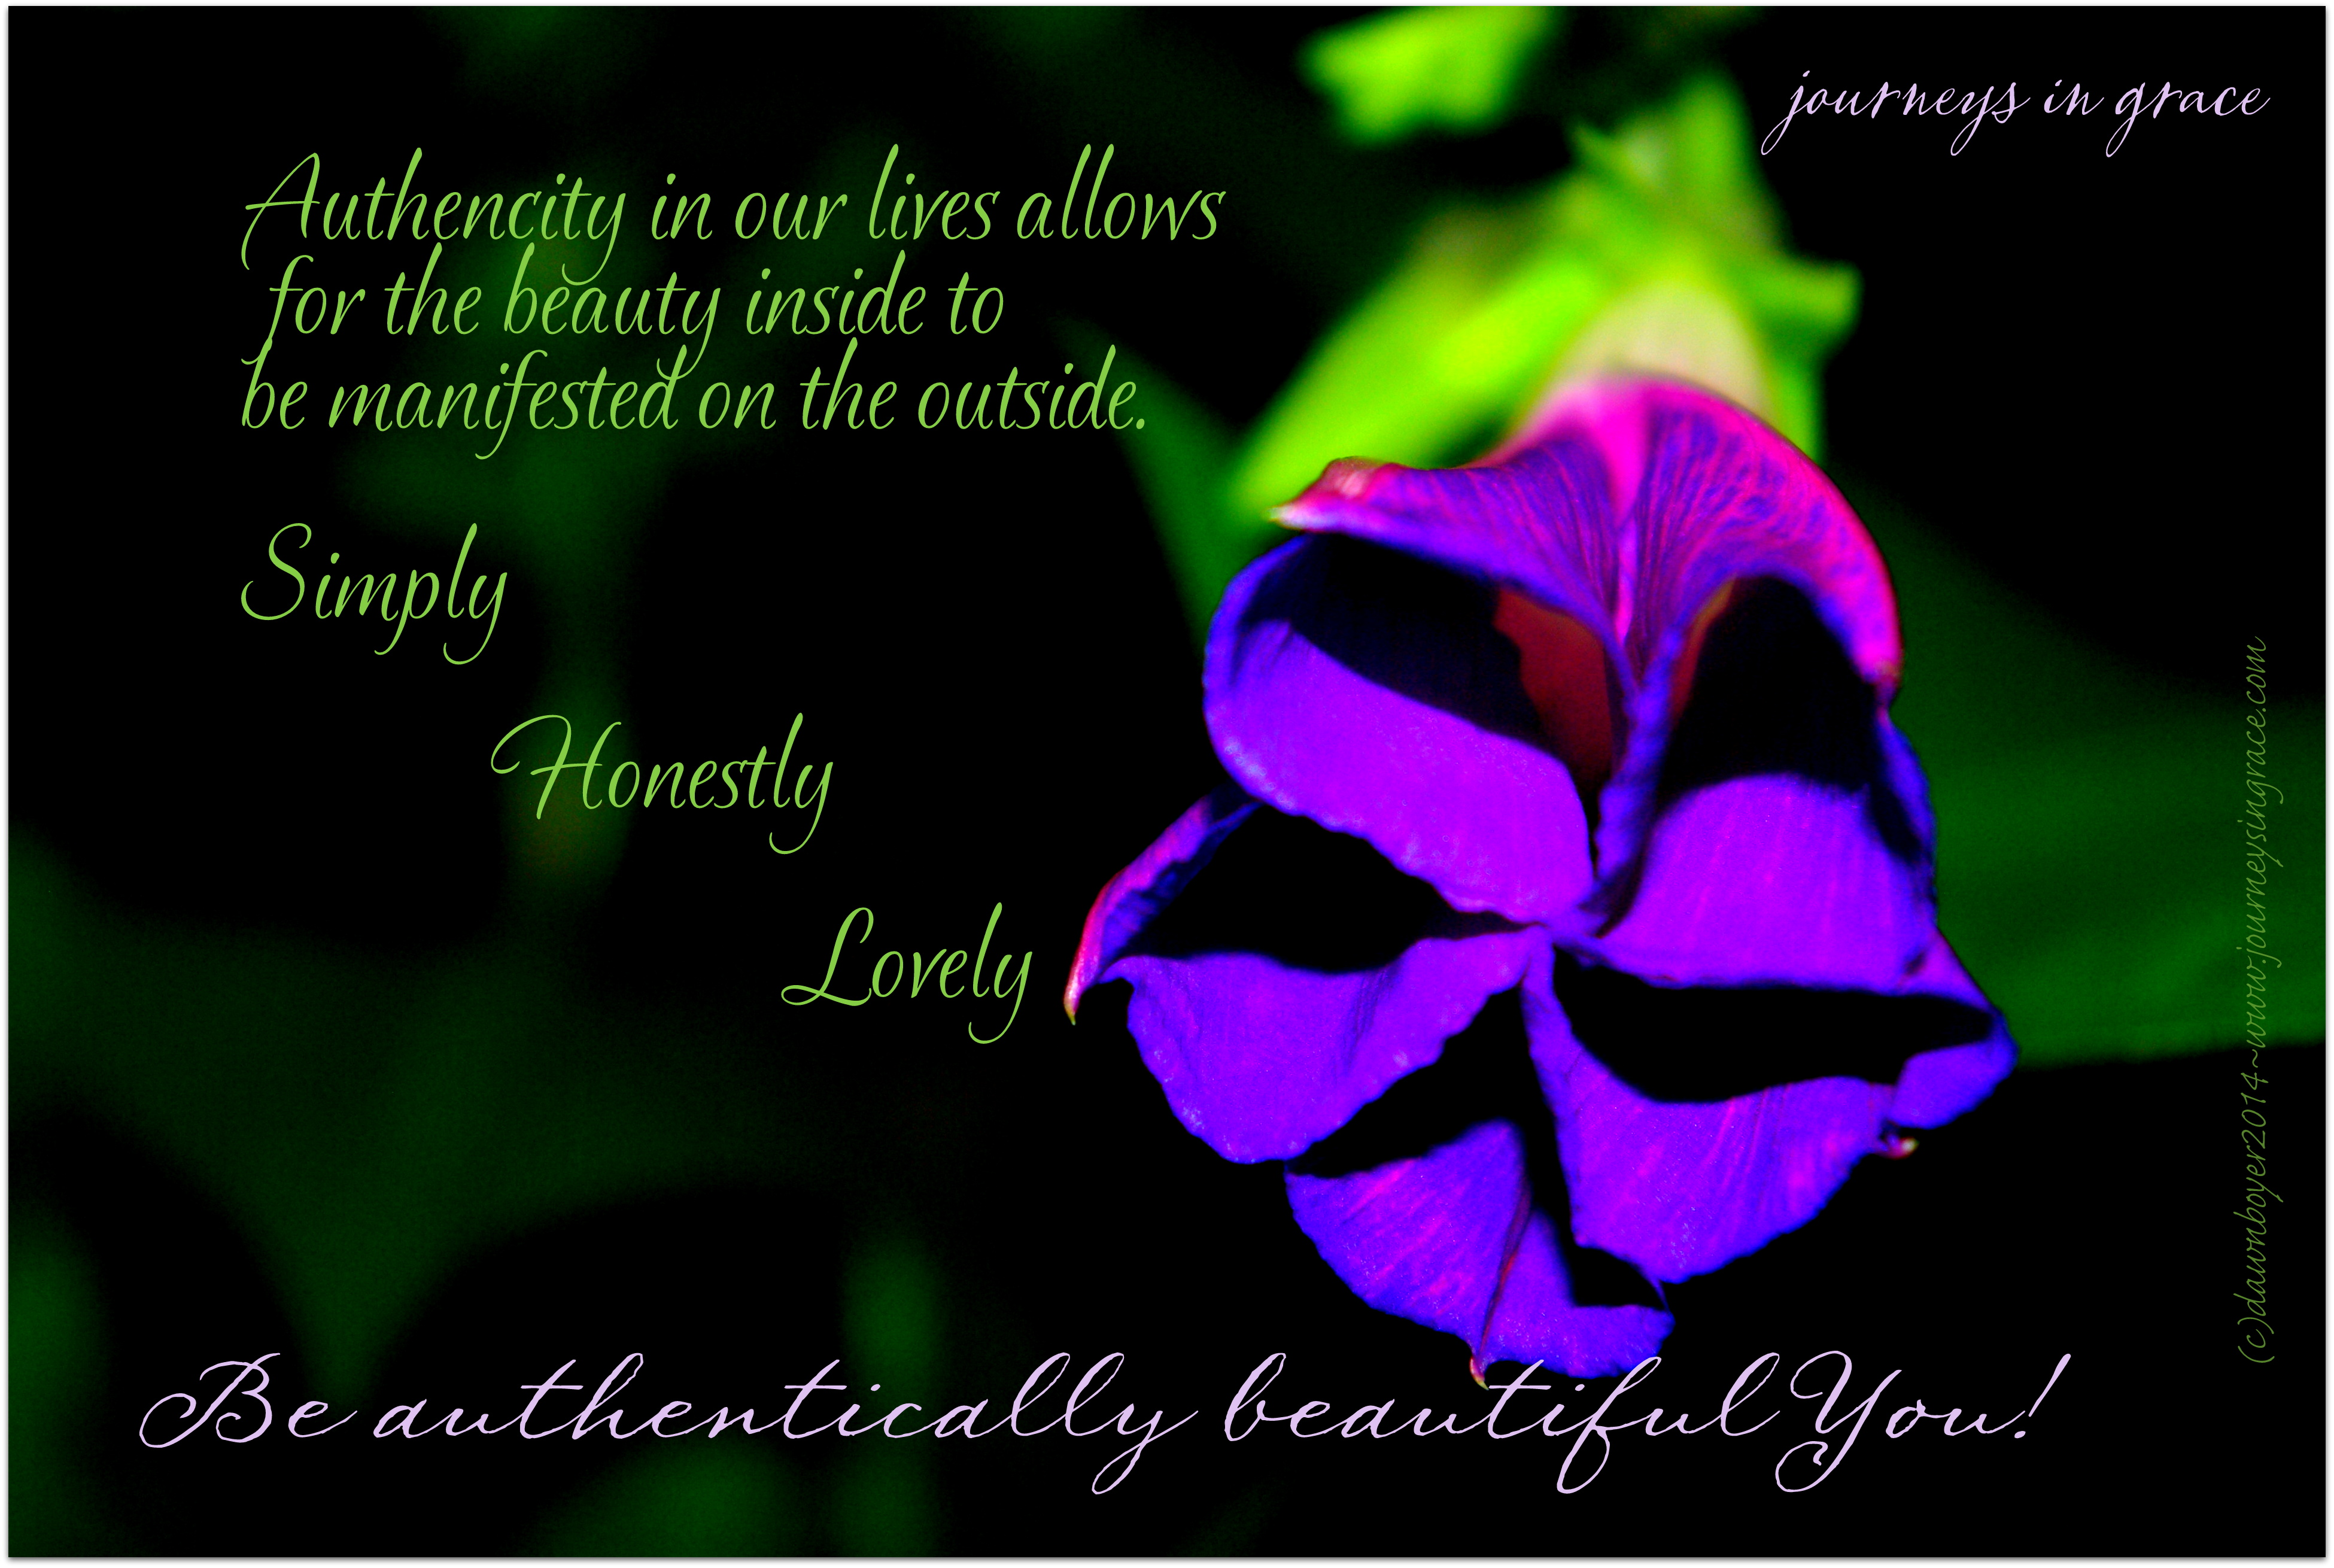 d6313d70b7 Be Authentically Beautiful You! - Journeys in Grace